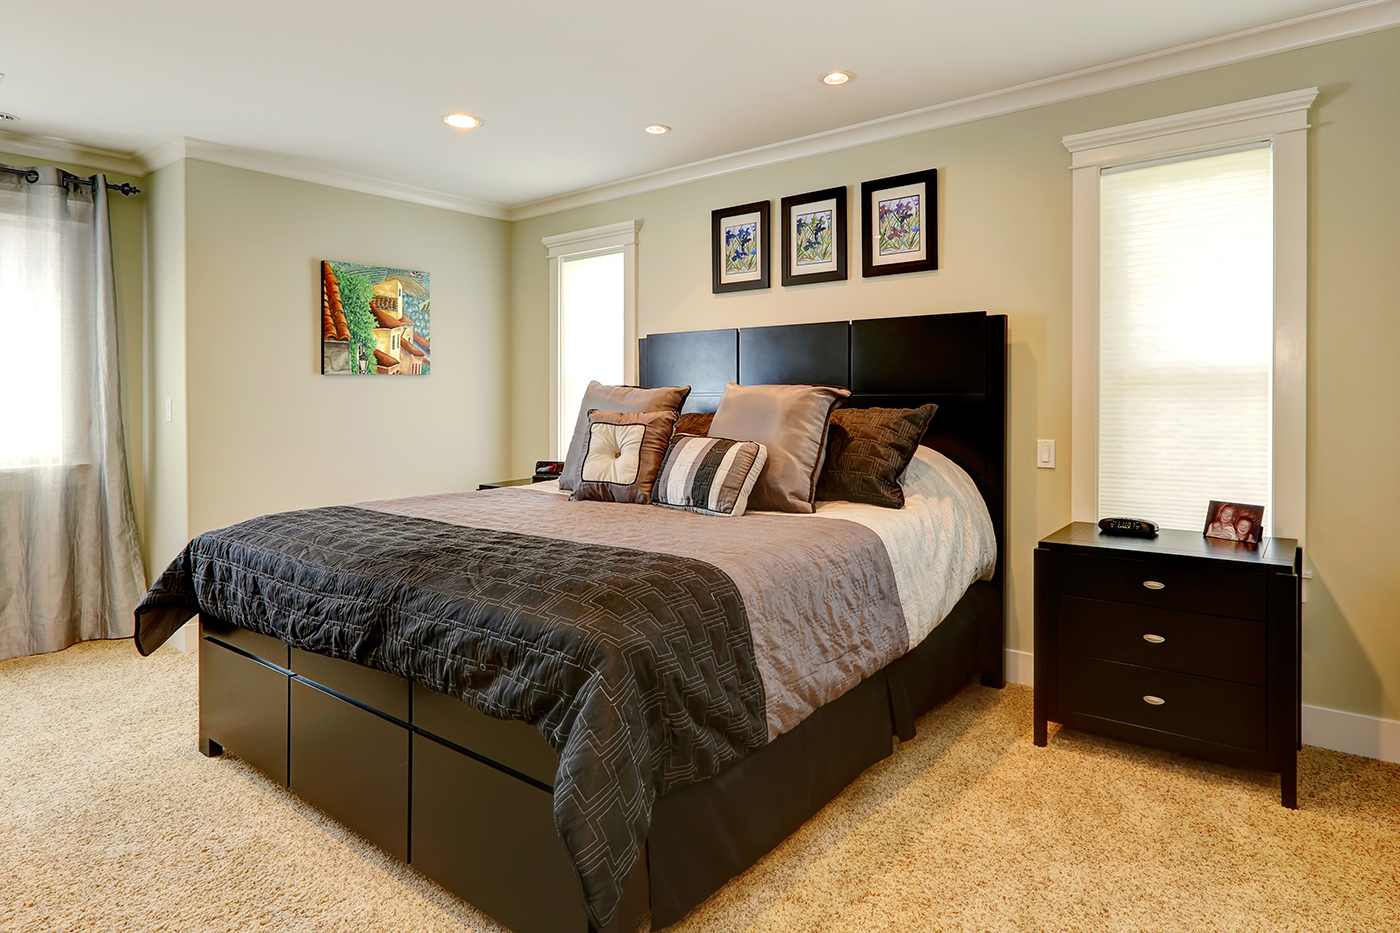 Ask a pro q a staging small bedrooms for sale better homes and gardens real estate life Best time to buy bedroom furniture on sale